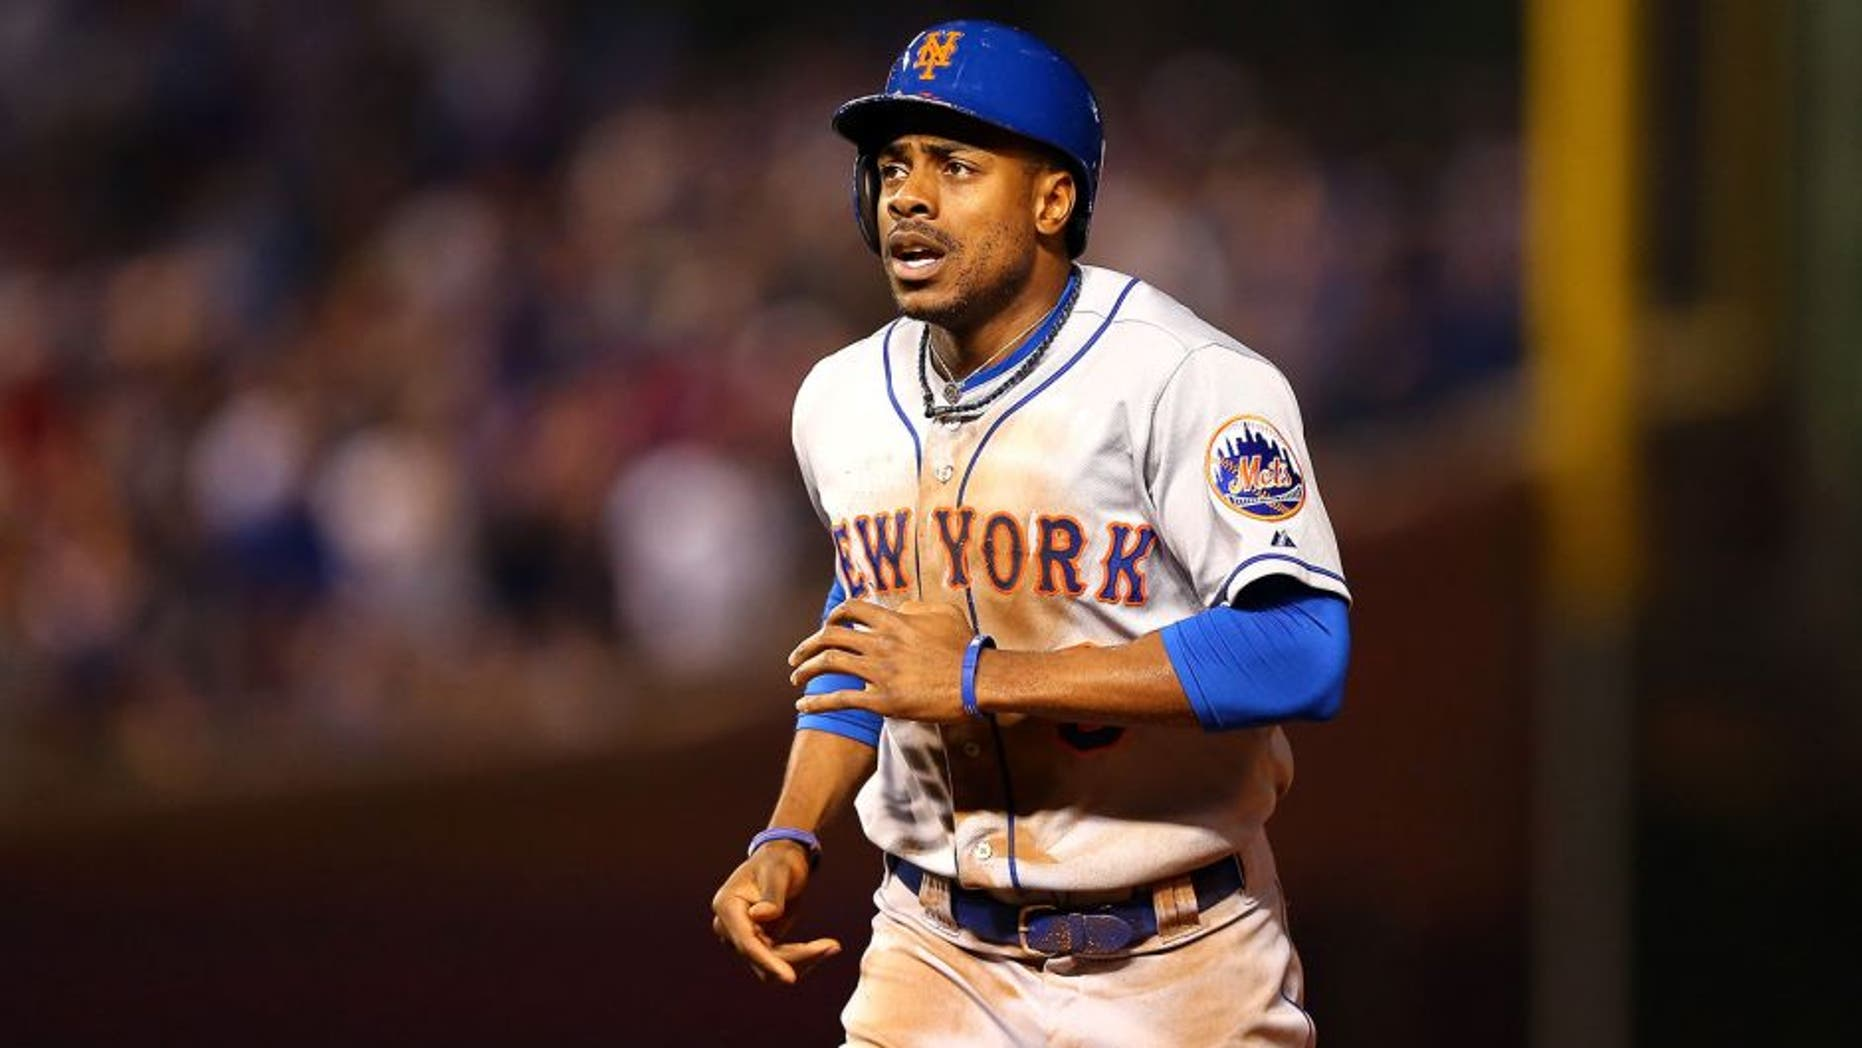 CHICAGO, IL - OCTOBER 20: Curtis Granderson #3 of the New York Mets runs back to the dugout after being tagged out at second base in the first inning against the Chicago Cubs during game three of the 2015 MLB National League Championship Series at Wrigley Field on October 20, 2015 in Chicago, Illinois. (Photo by Elsa/Getty Images)